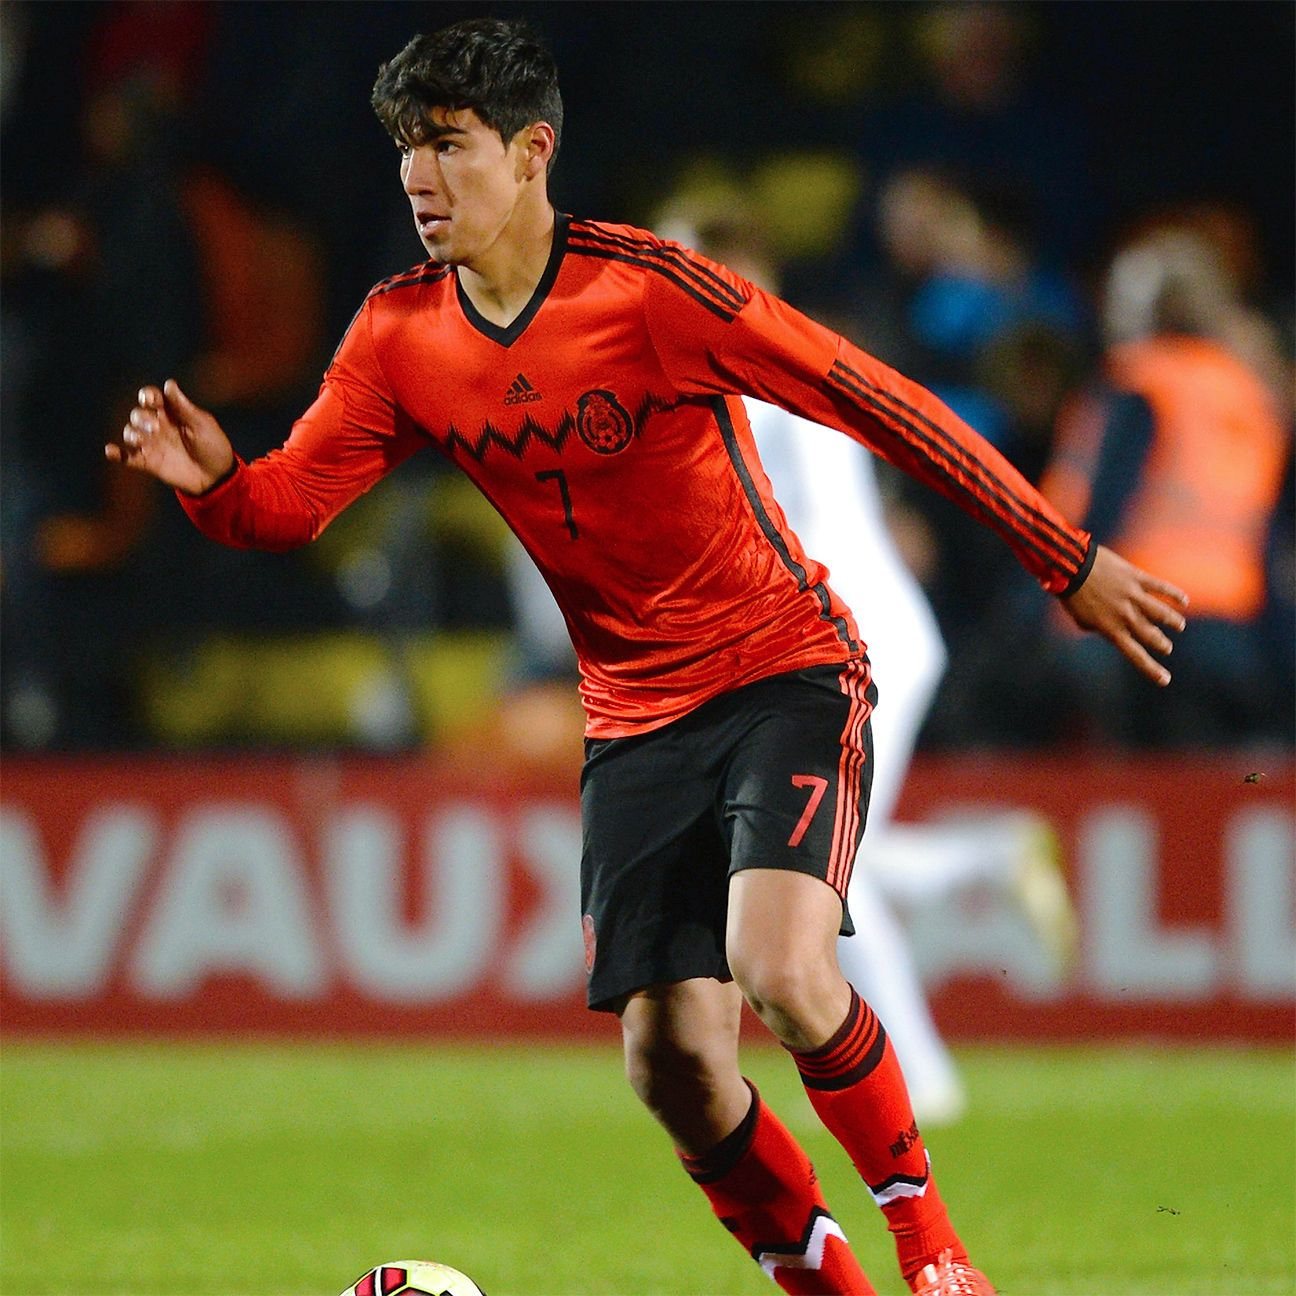 Erick Gutierrez is the next in a line of gifted Mexican left-footed midfielders.